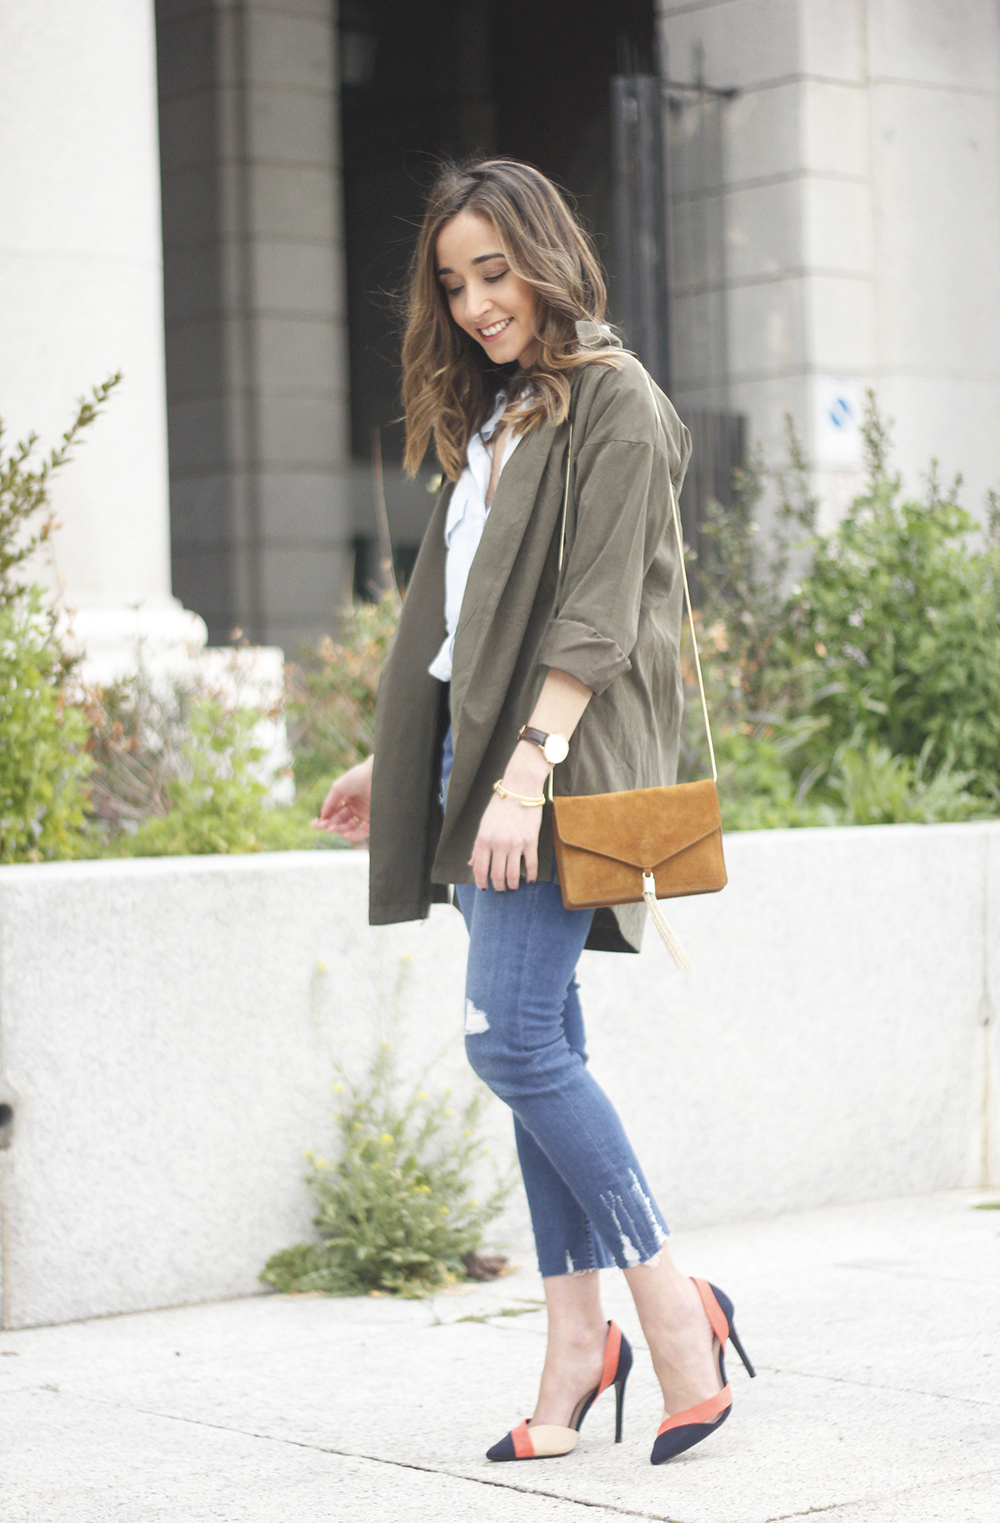 Military green shirt heels choker accessories jeans suede bag outfit03